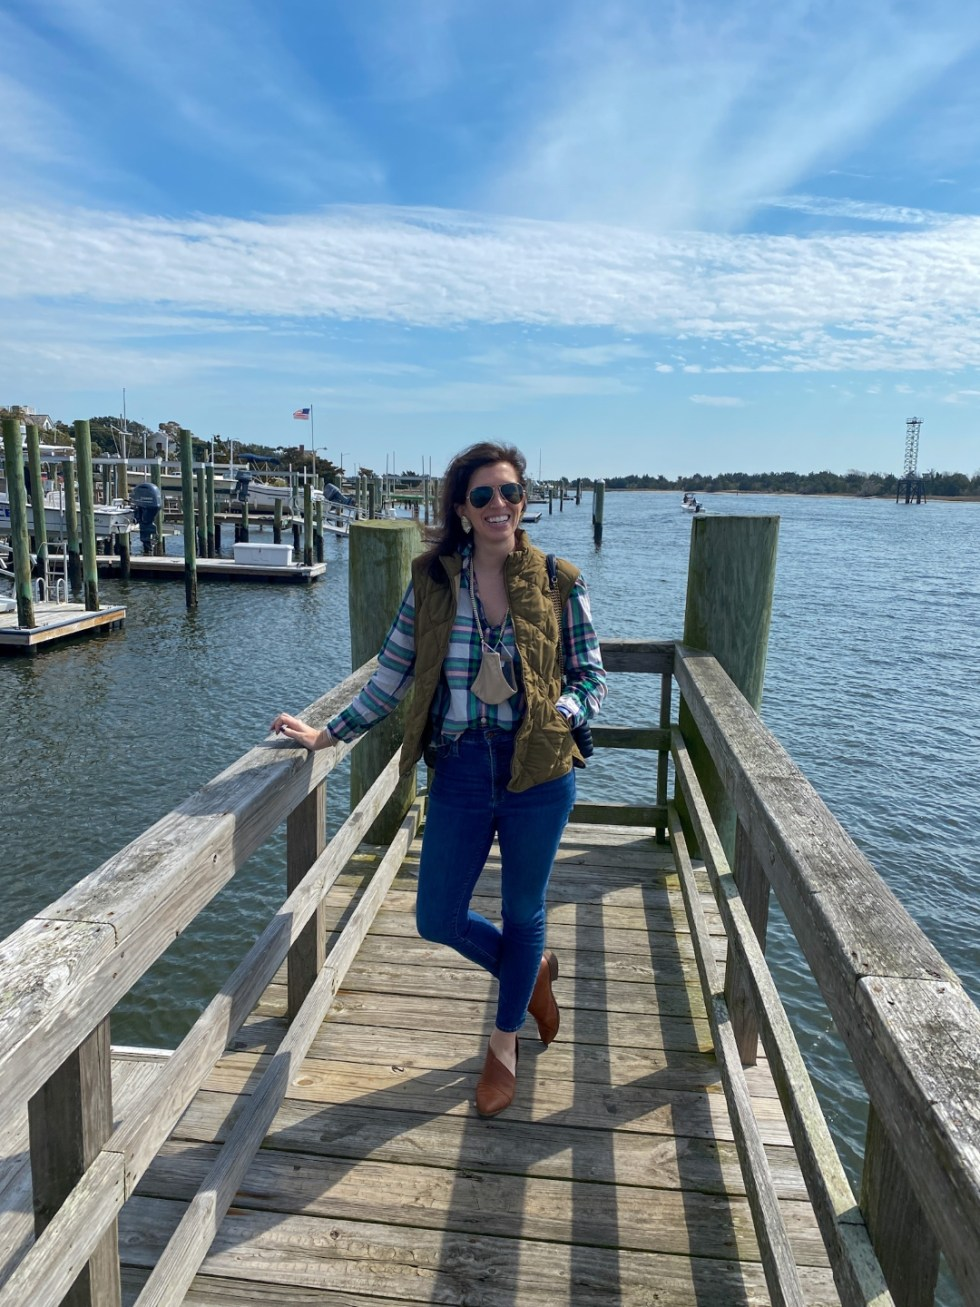 Weekend Travel: The Best Things to Do in Beaufort NC in 48 Hours - I'm Fixin' To - @imfixintoblog |Things to Do in Beaufort NC by popular NC travel blog, I'm Fixin' To: image of a woman standing on a pier.